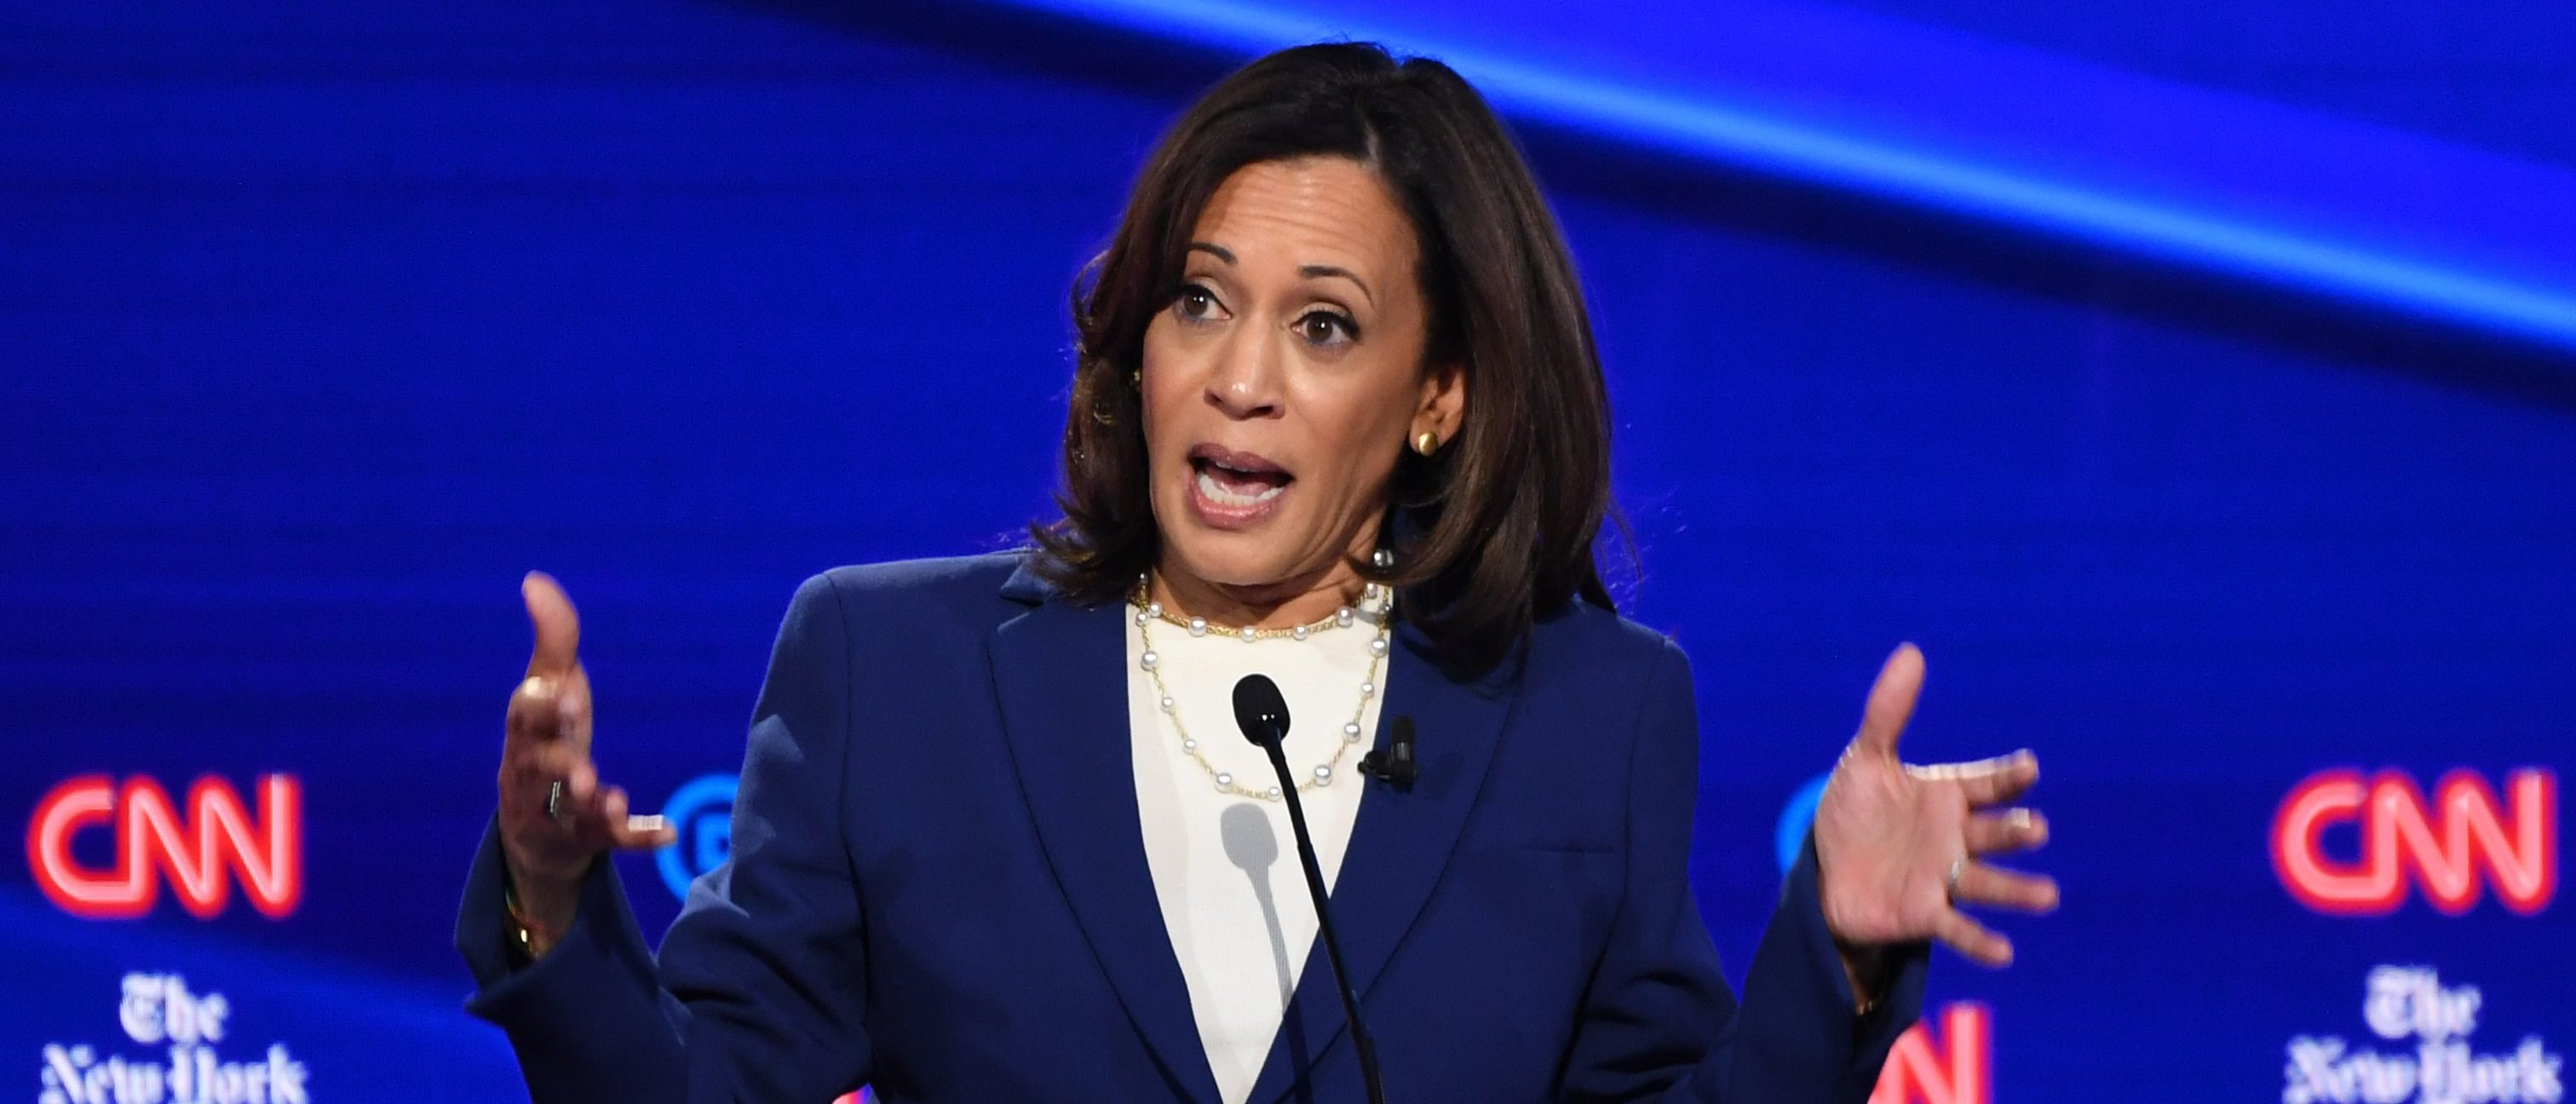 Democratic presidential hopeful California Senator Kamala Harris gestures as she speaks during the fourth Democratic primary debate of the 2020 presidential campaign season co-hosted by The New York Times and CNN at Otterbein University in Westerville, Ohio on October 15, 2019. (SAUL LOEB/AFP via Getty Images)